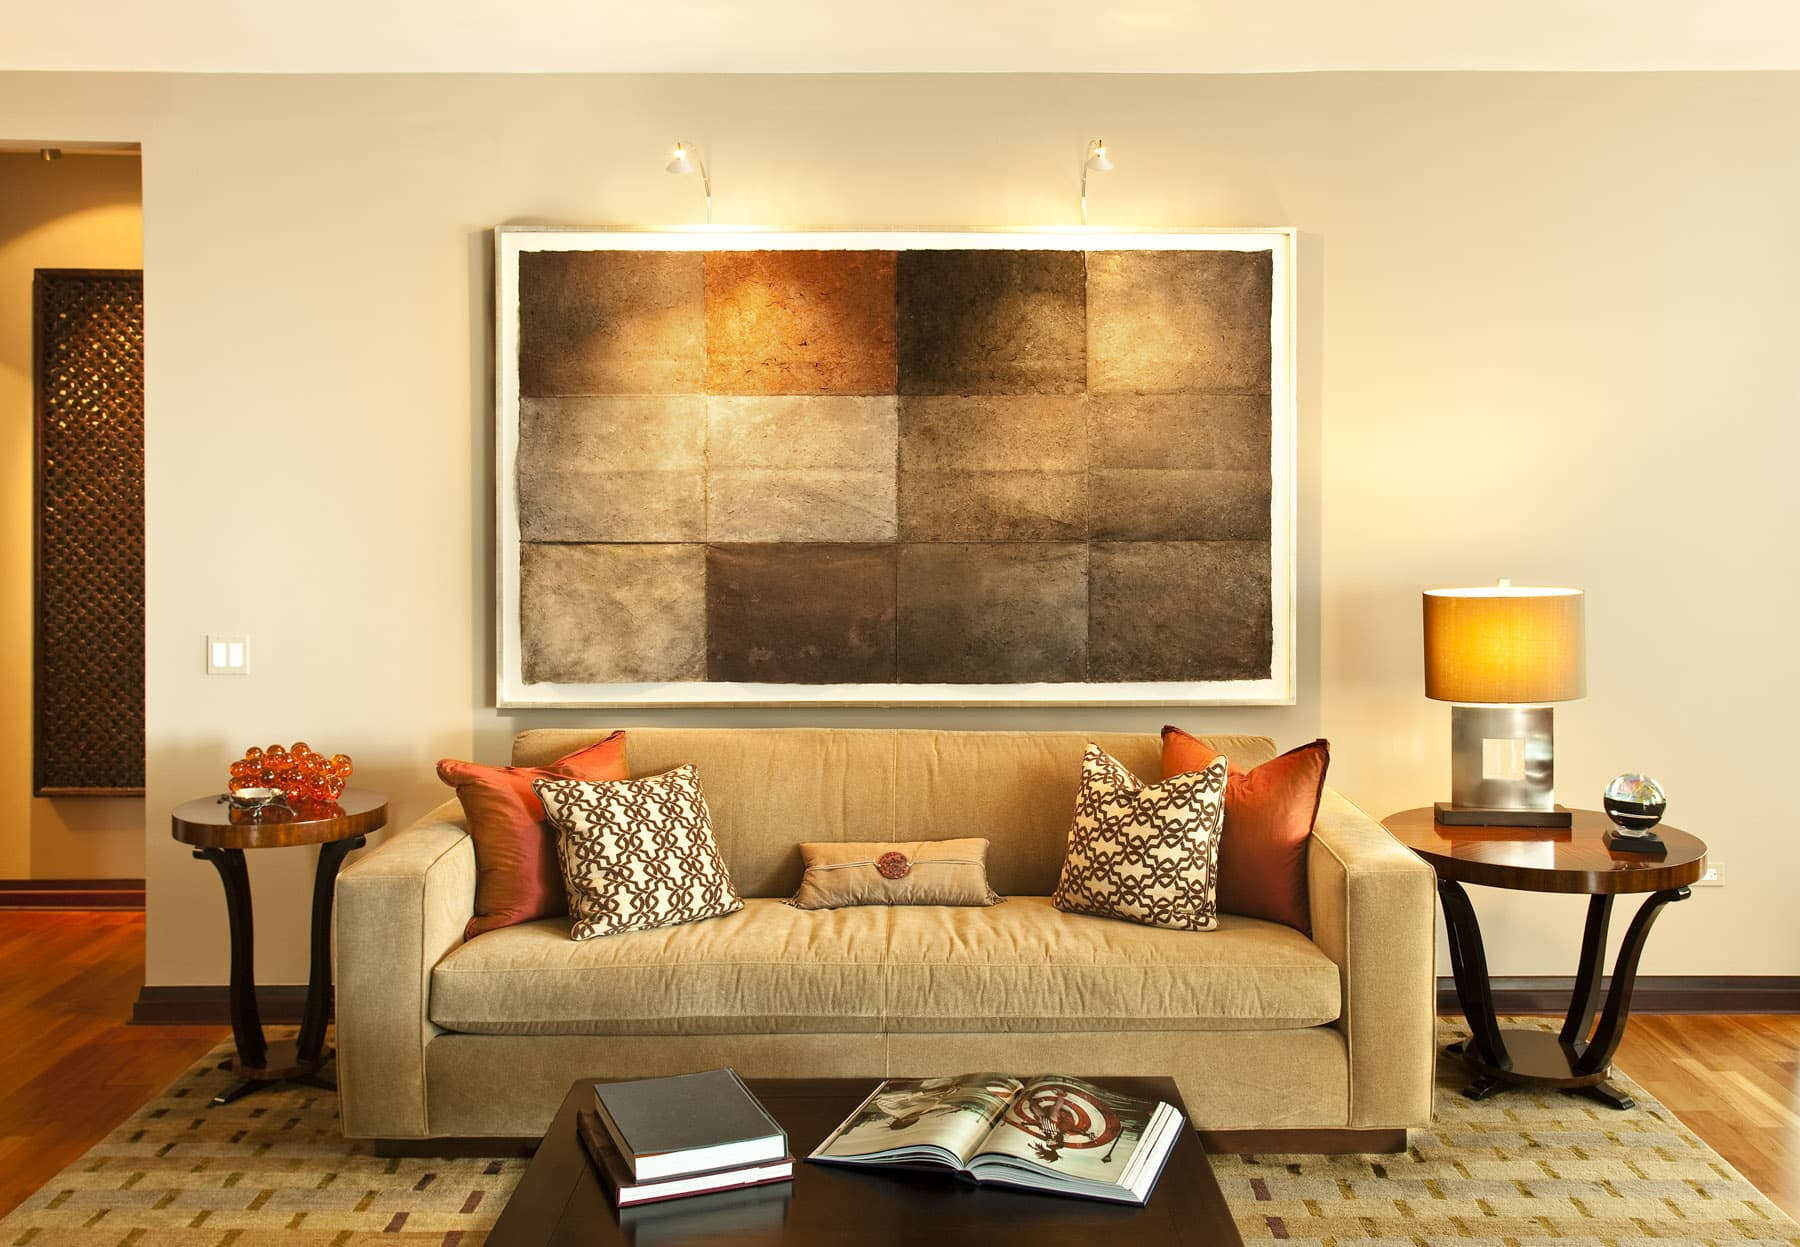 Living Room Interior Photography